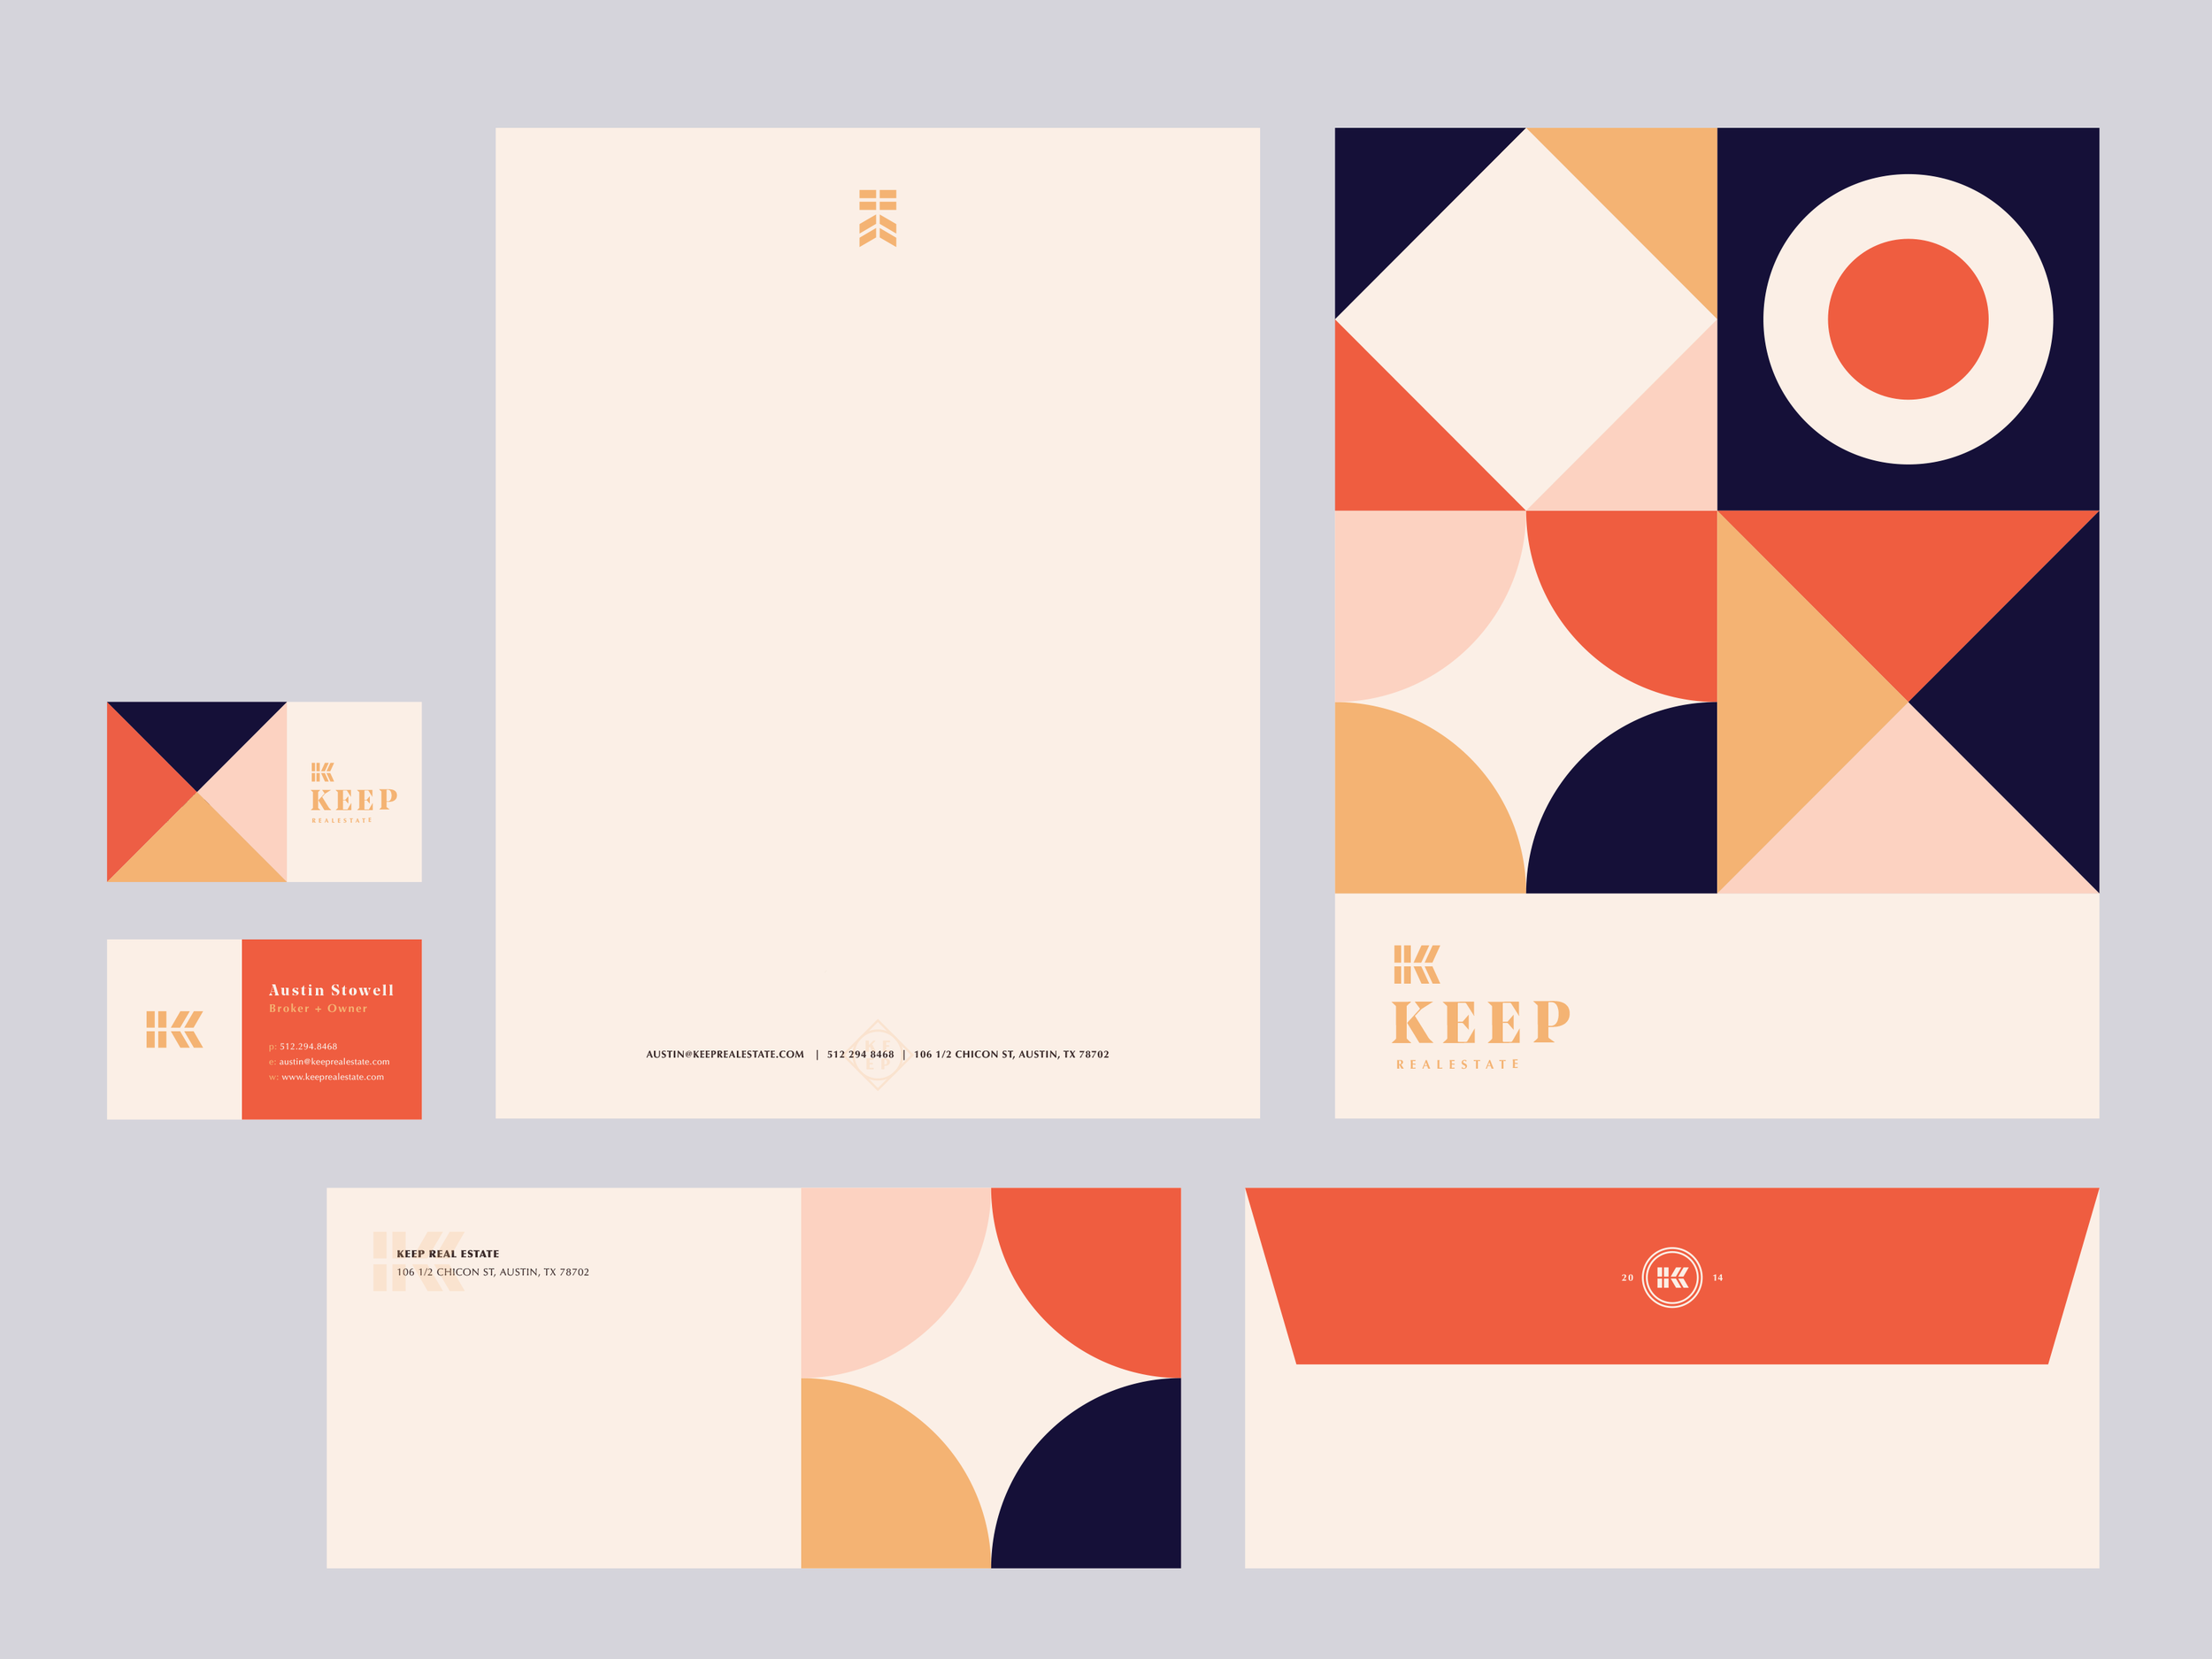 Branded collateral for Keep Real Estate